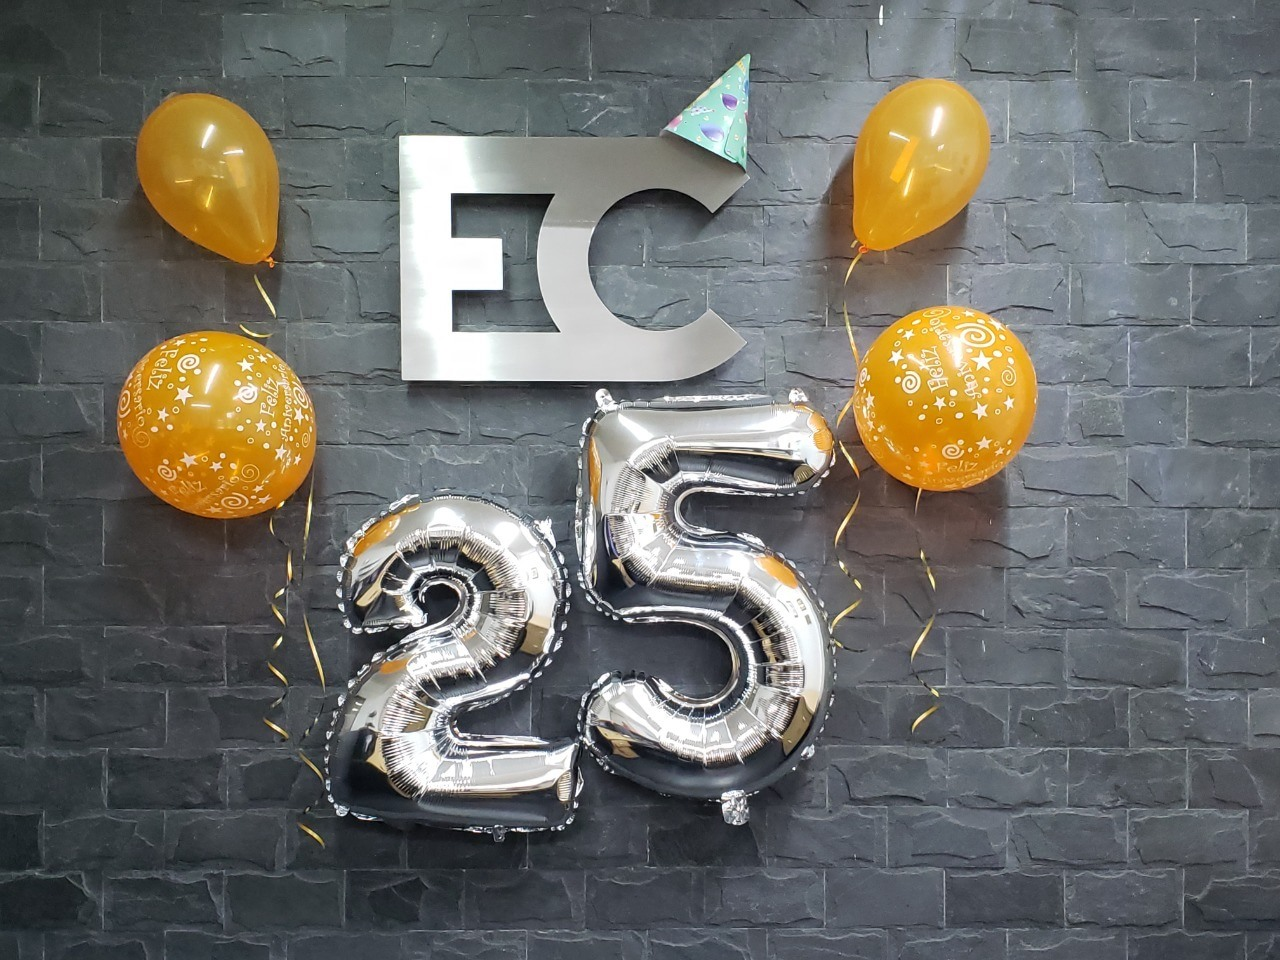 EC turns 25 years old